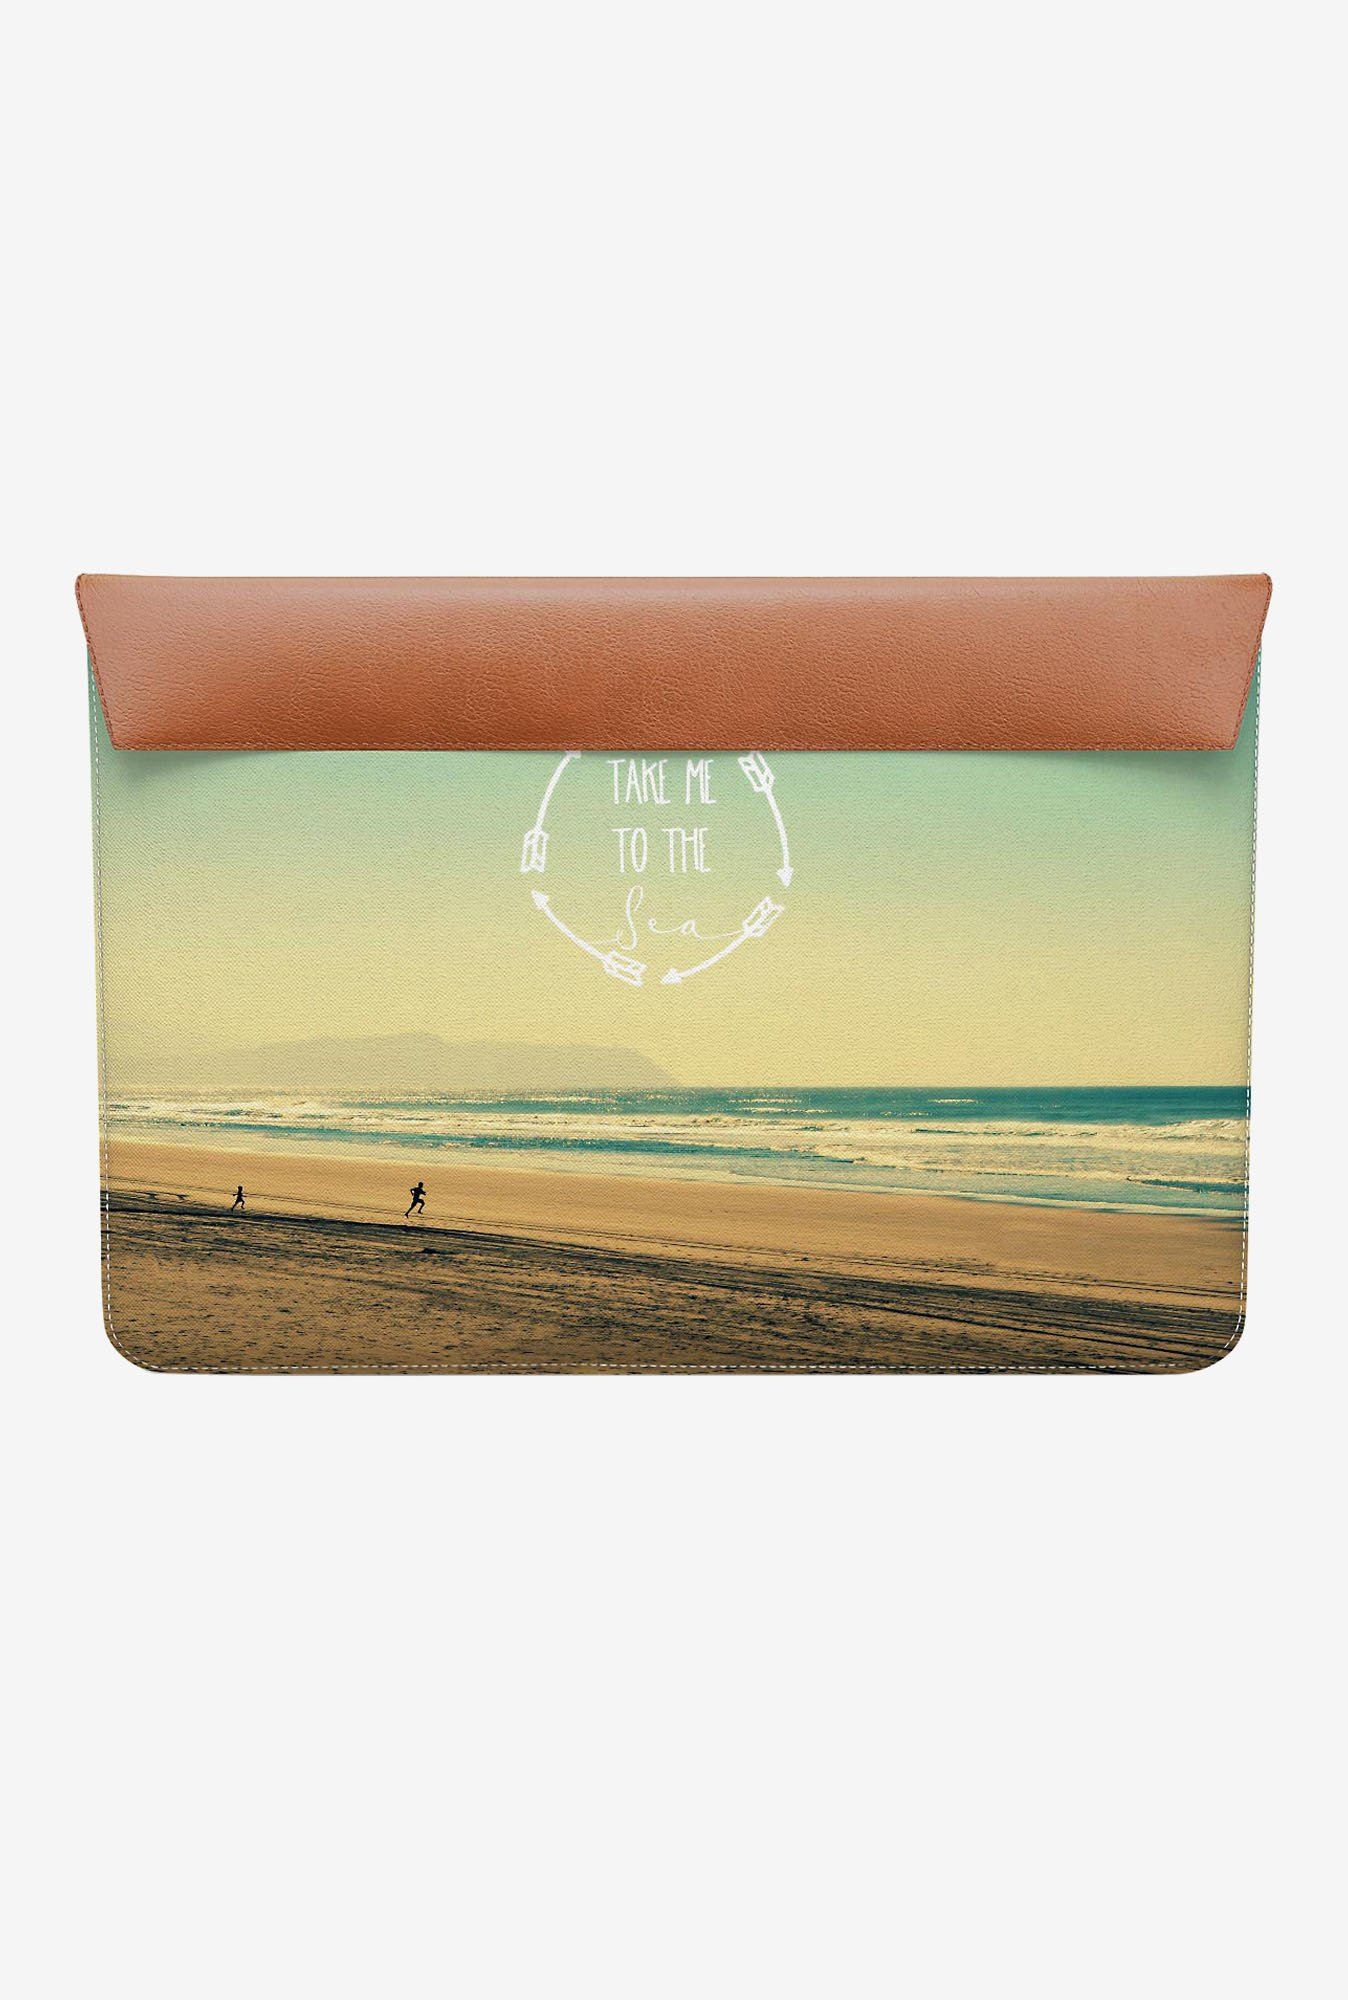 DailyObjects Take Me To Sea MacBook Air 11 Envelope Sleeve